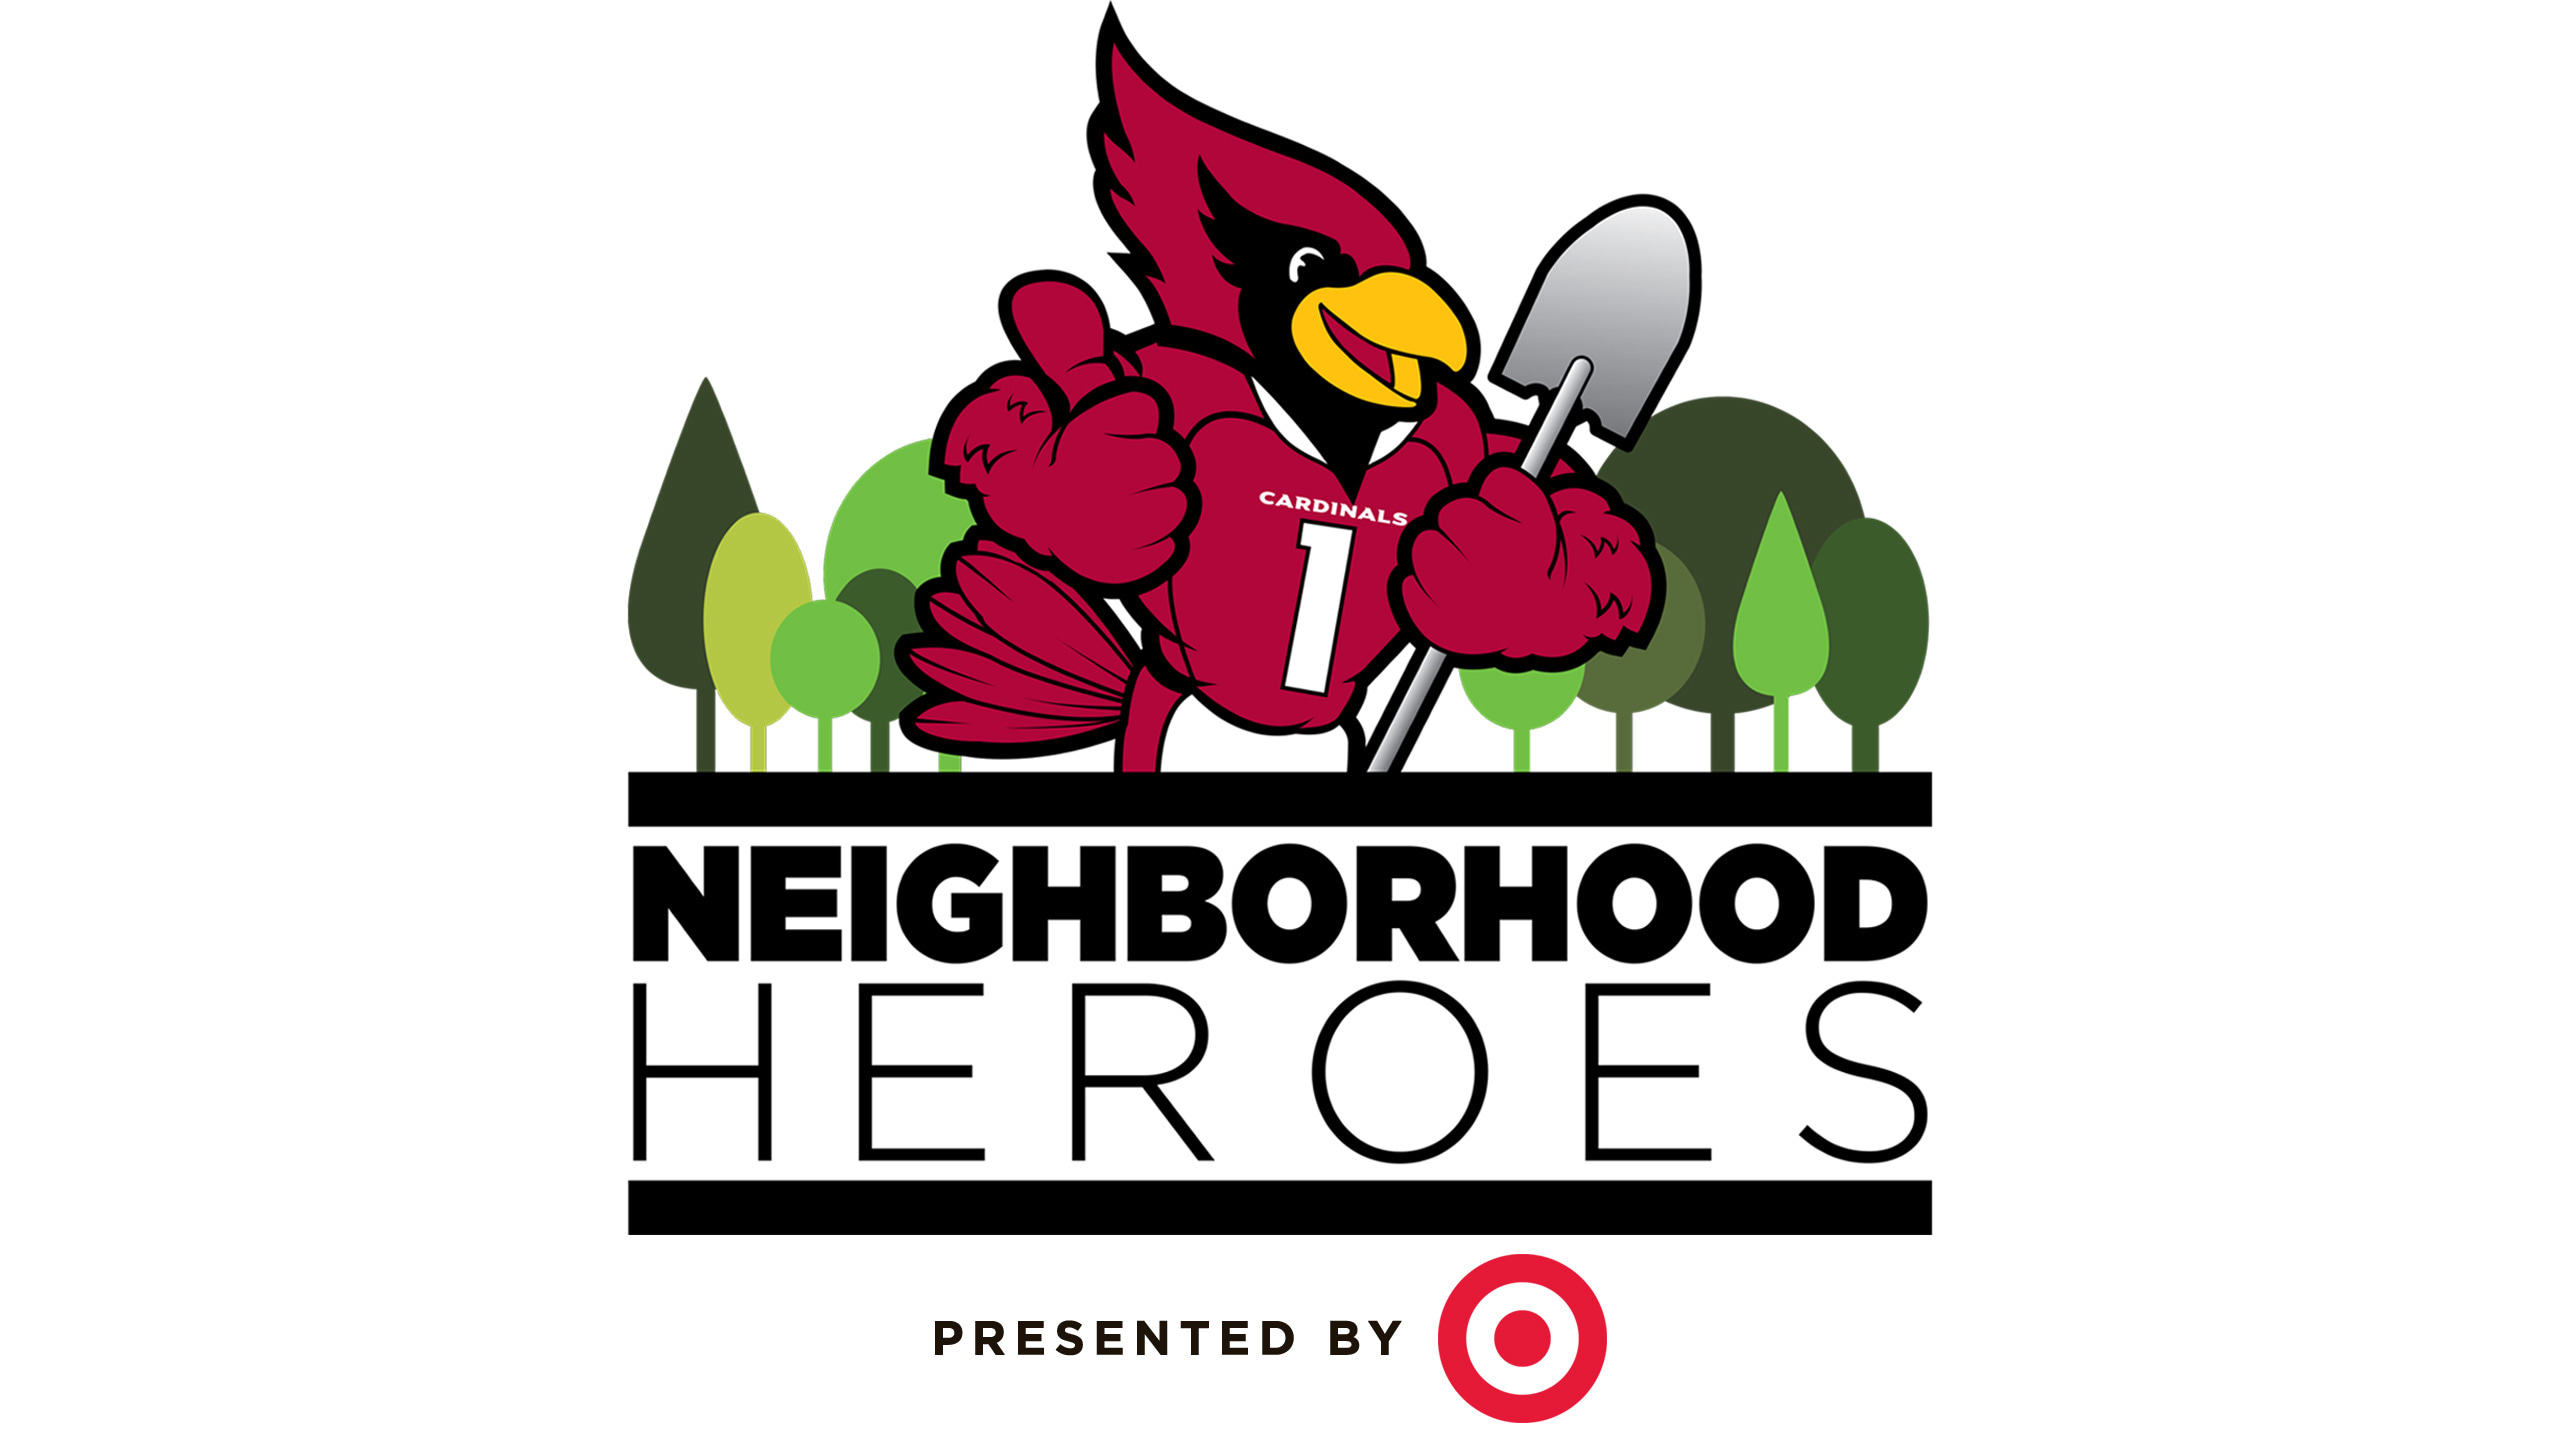 Neighborhood Heroes